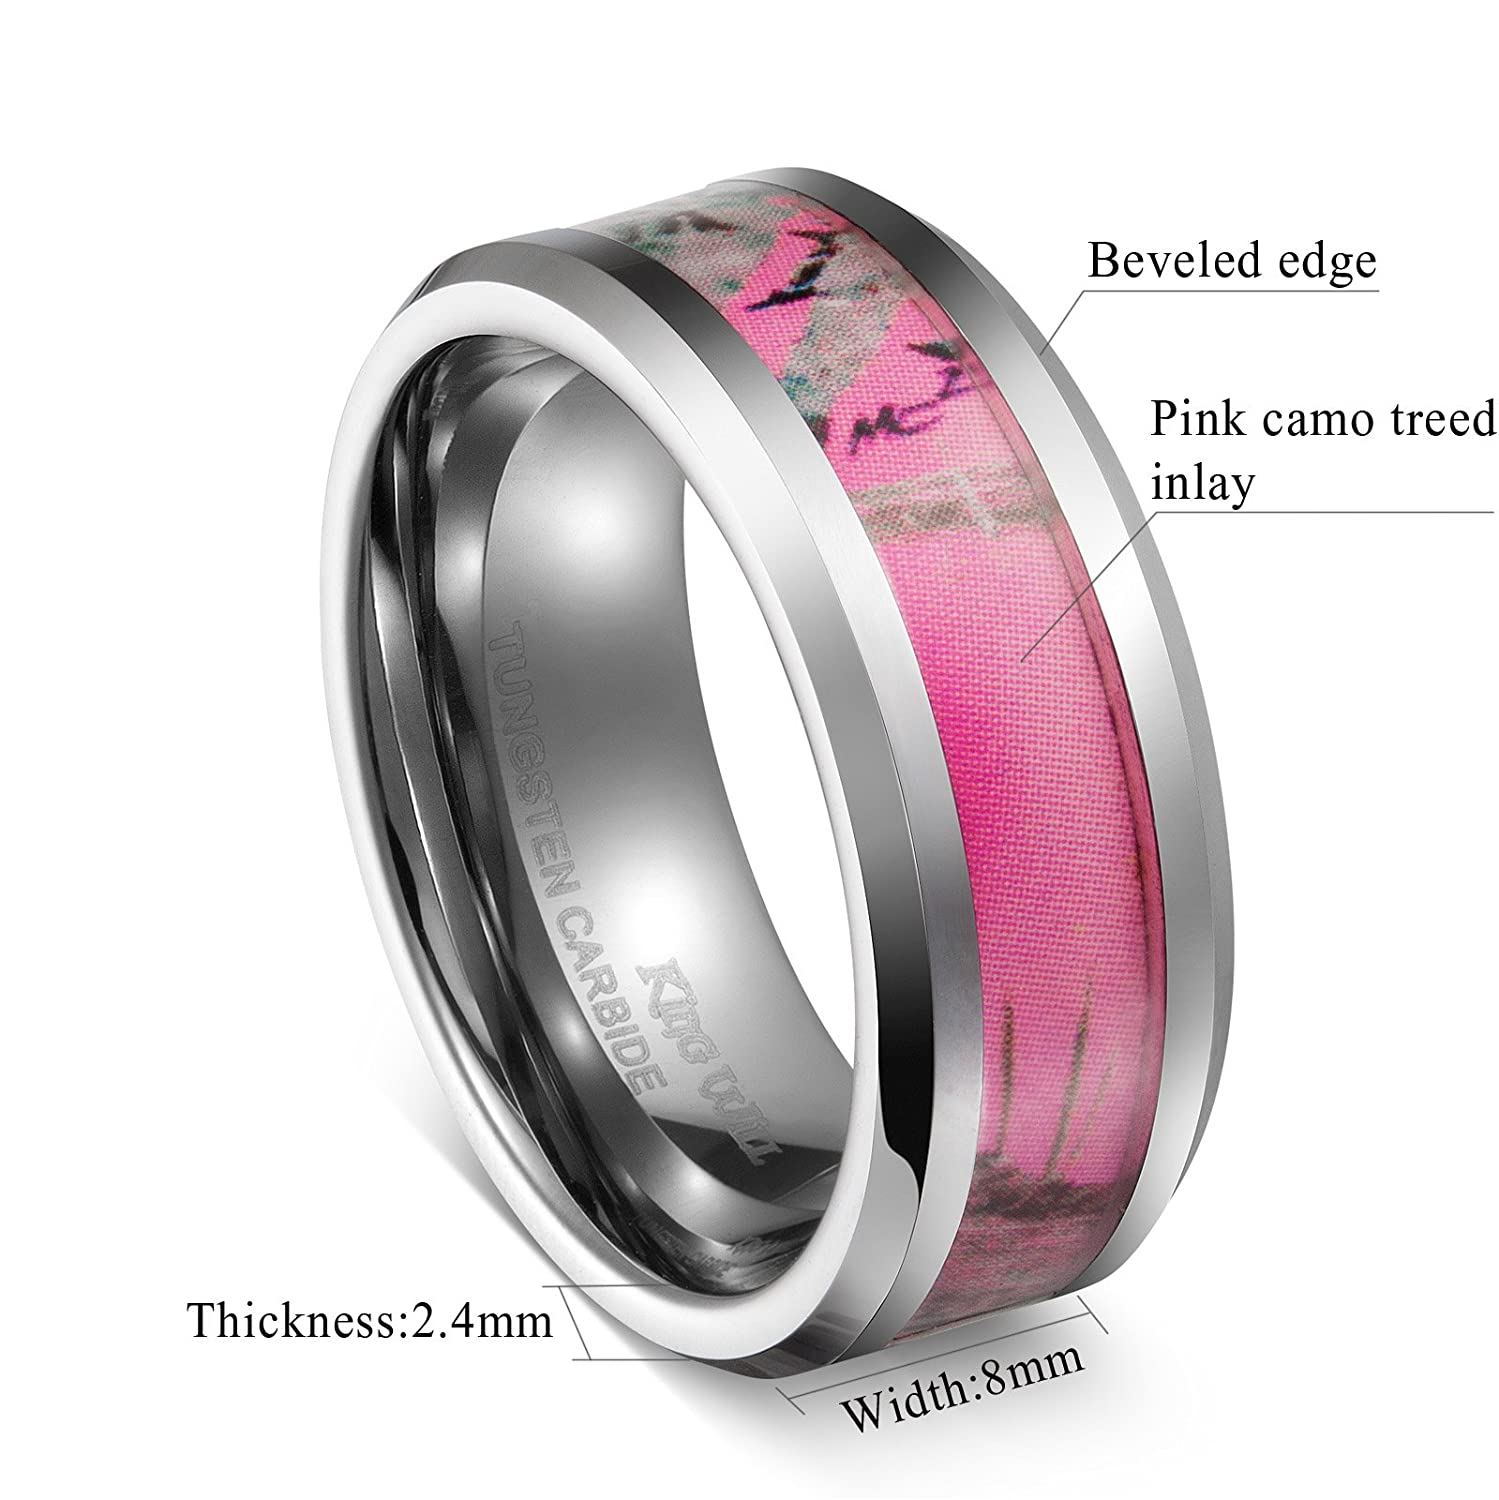 BY pink camo wedding rings Amazon com King Will 8mm Tungsten Carbide Ring Women s Camo Hunting Camouflage Wedding Band Pink Tree Jewelry